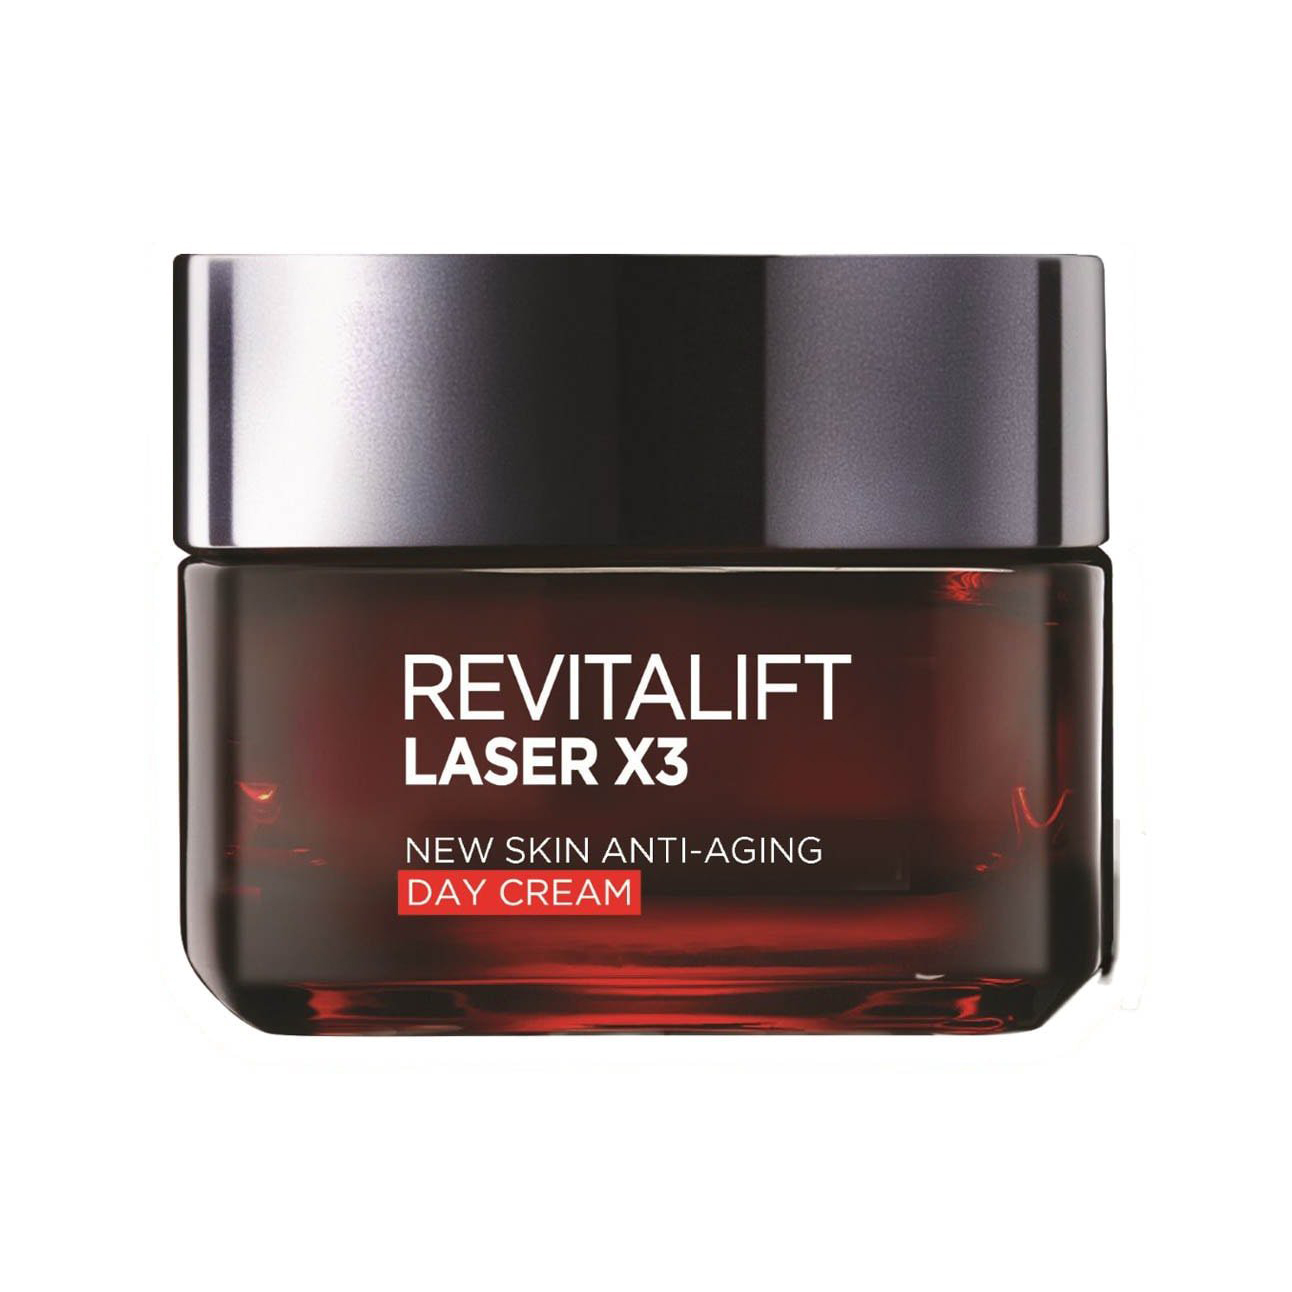 L'Oreal Paris Revitalift Laser Laser X3 New Skin Anti-aging Day Cream (50ml)